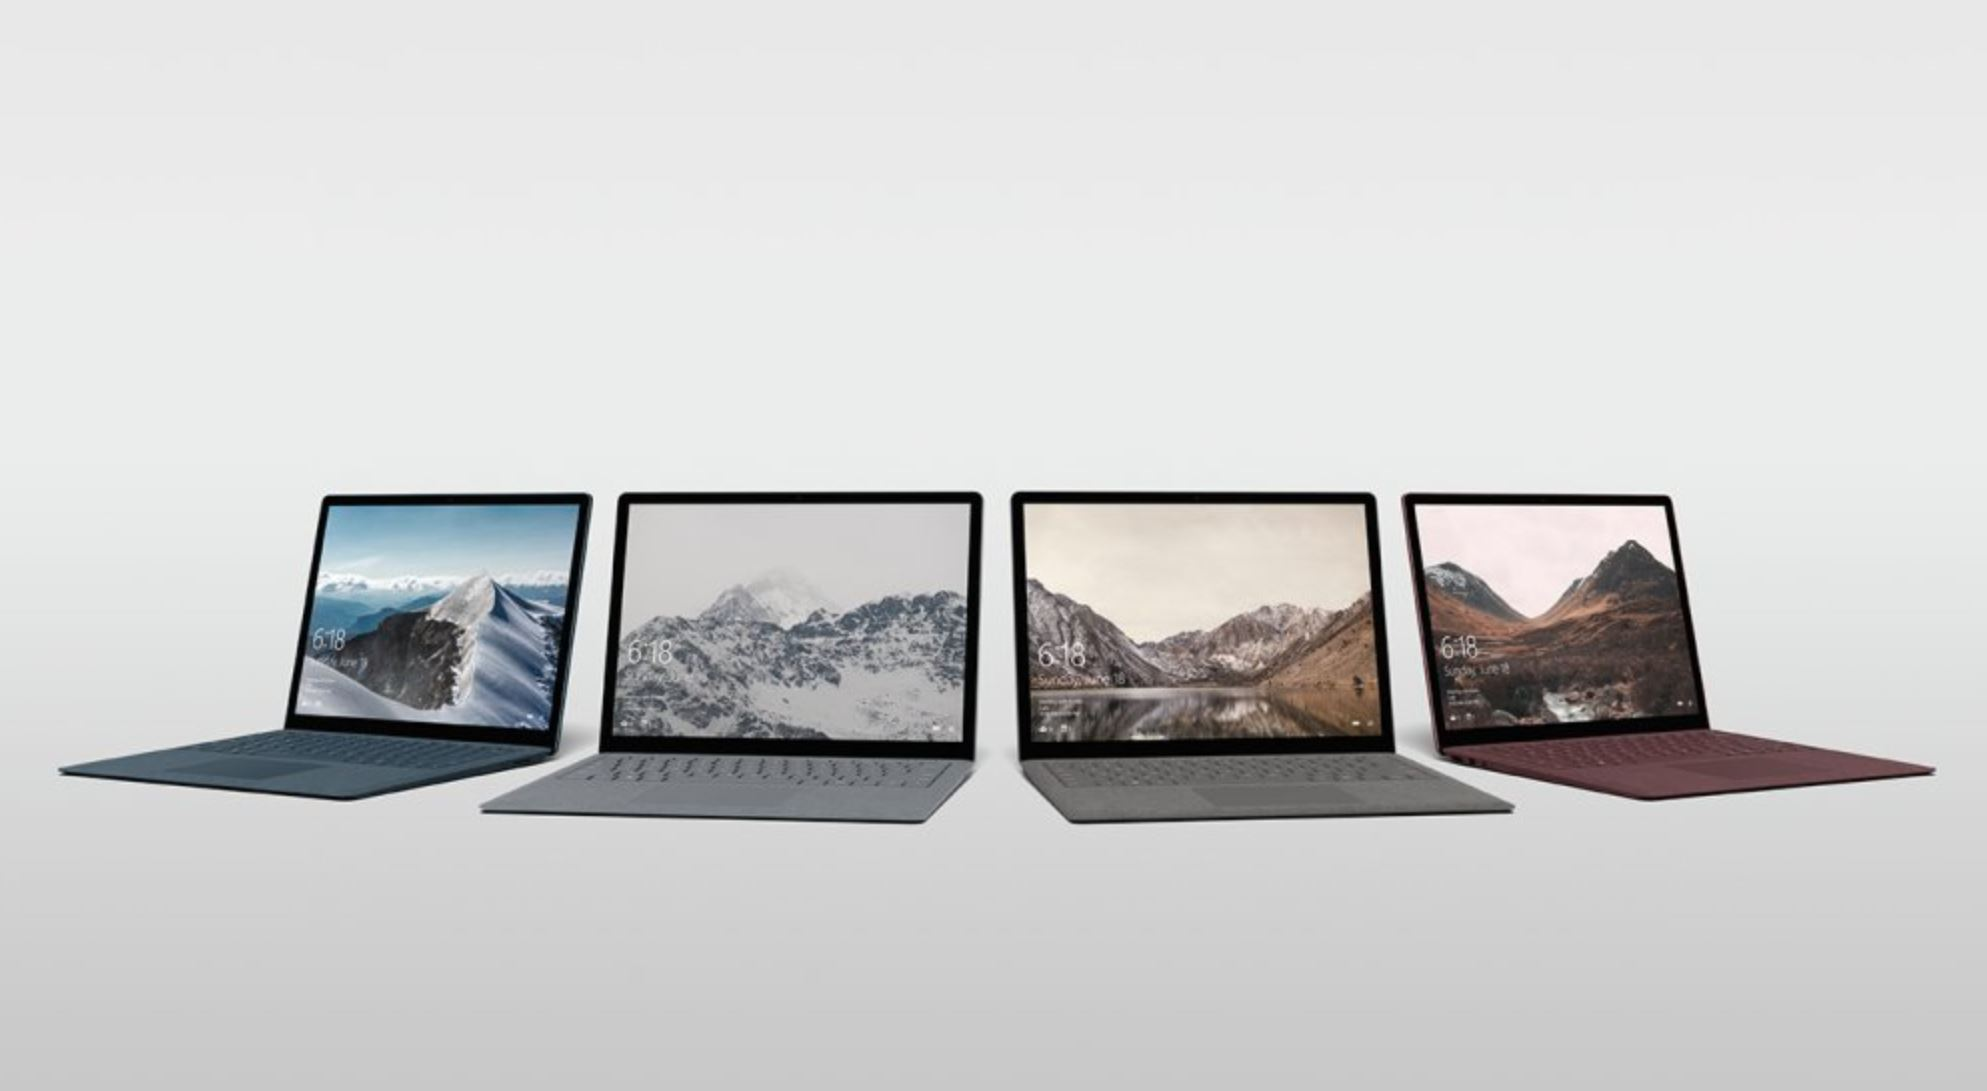 Microsoft launches Surface laptop, streamlined Windows 10